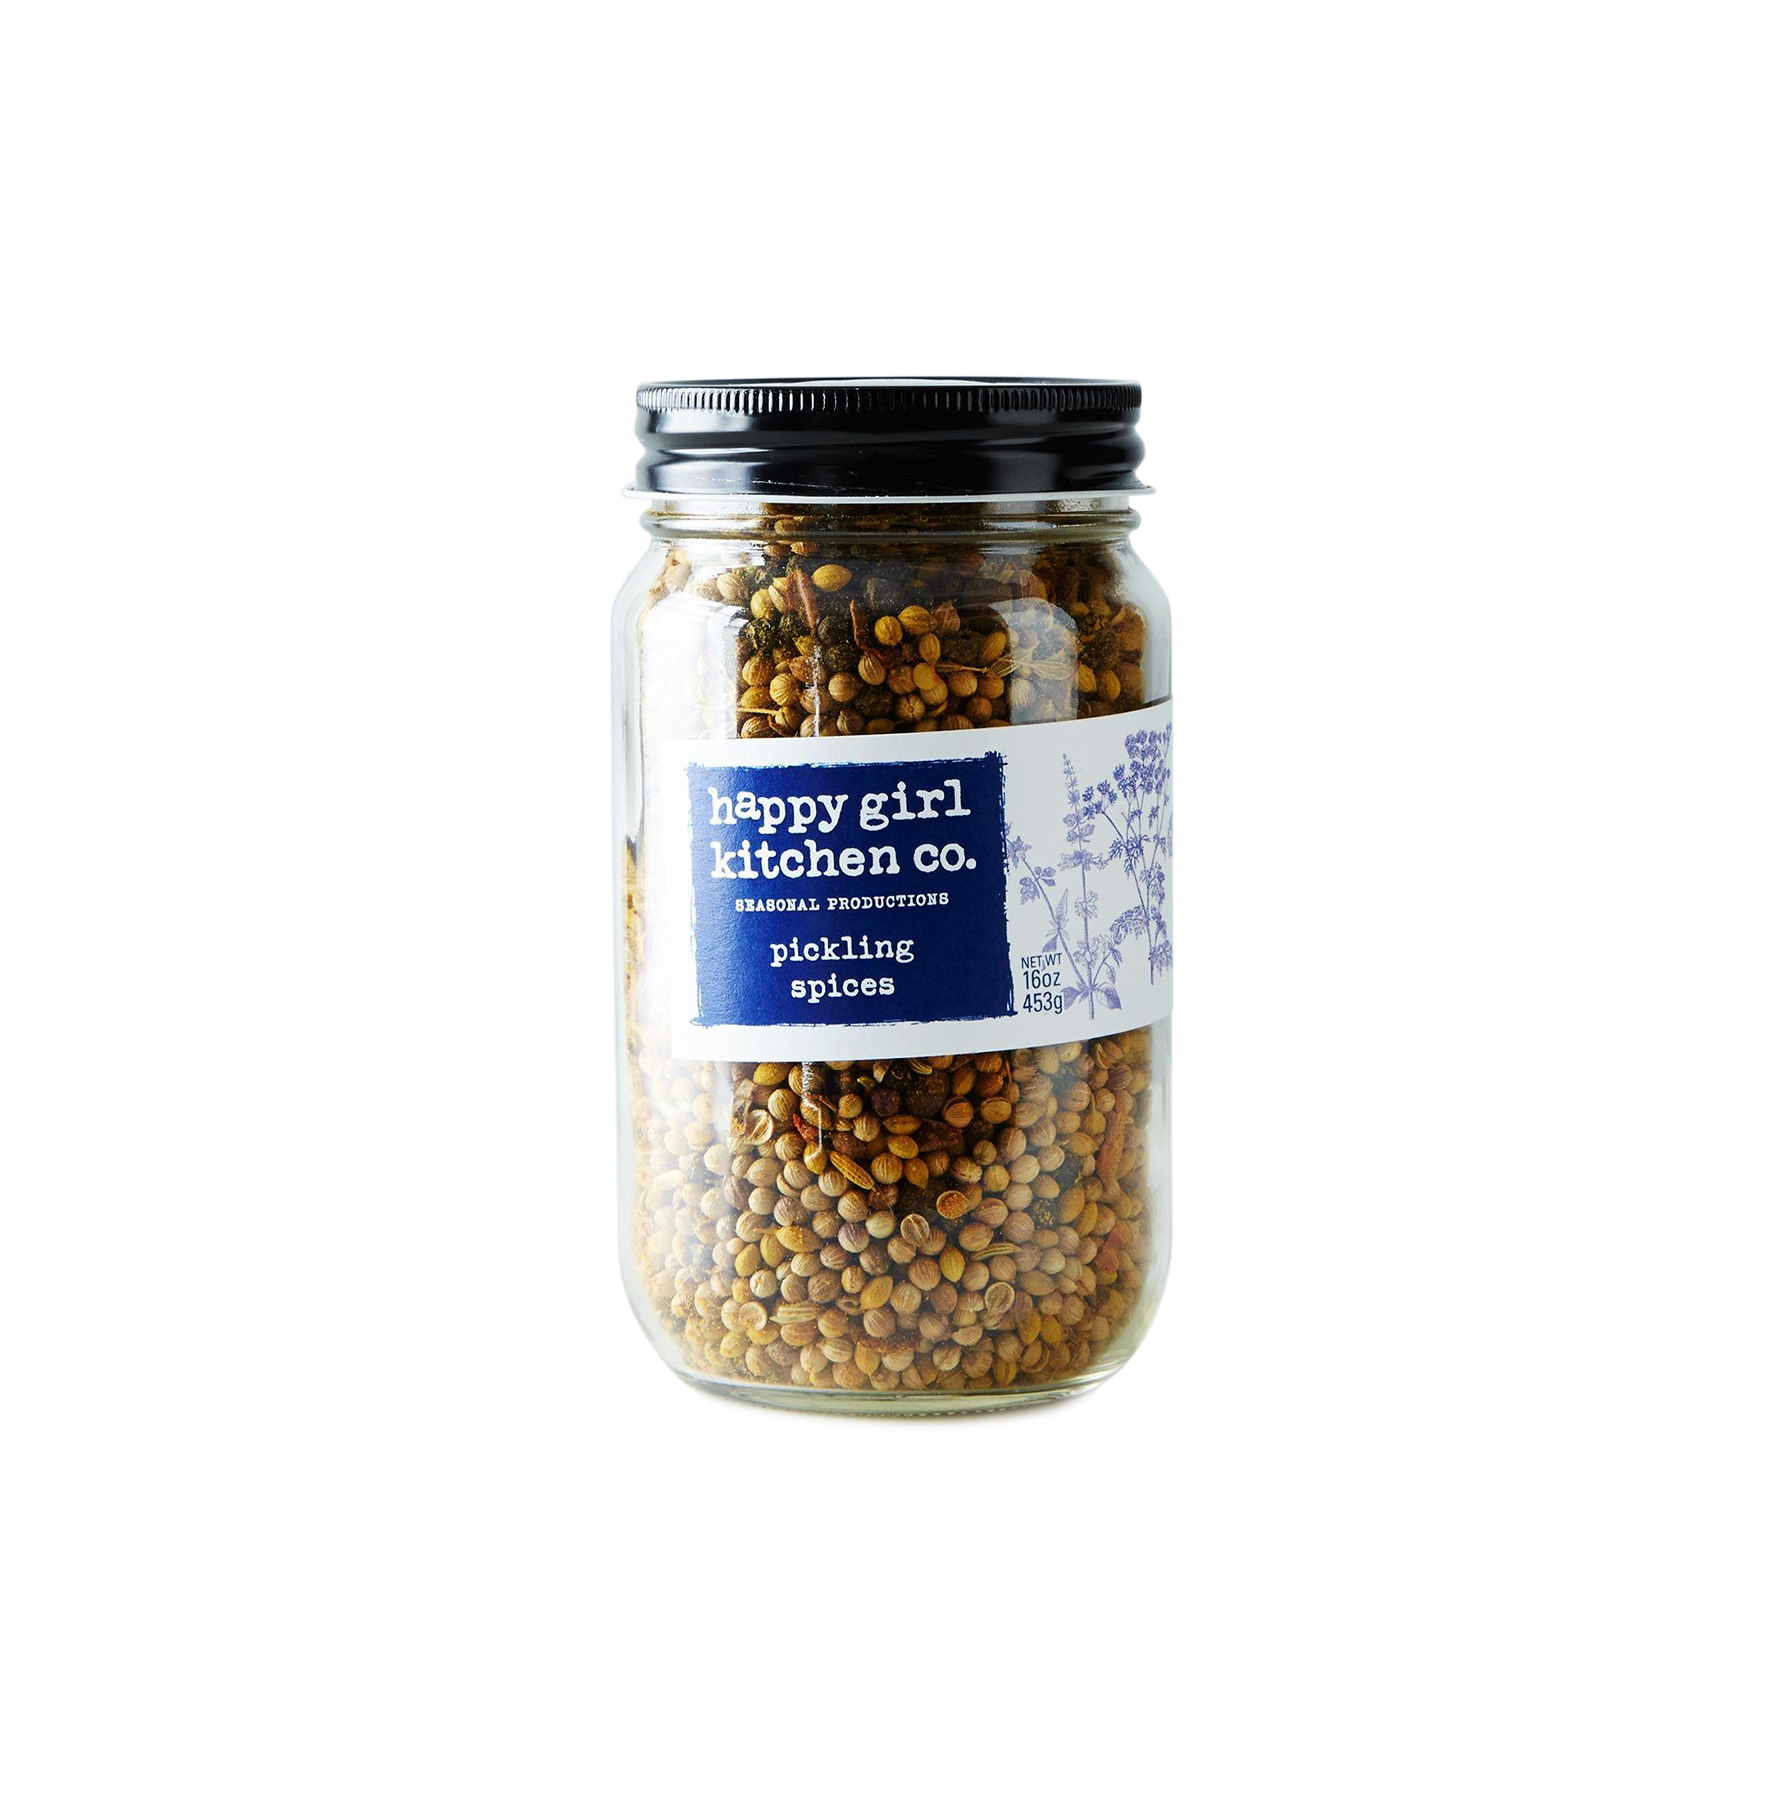 Happy Girl Kitchen Co Pickling Spices